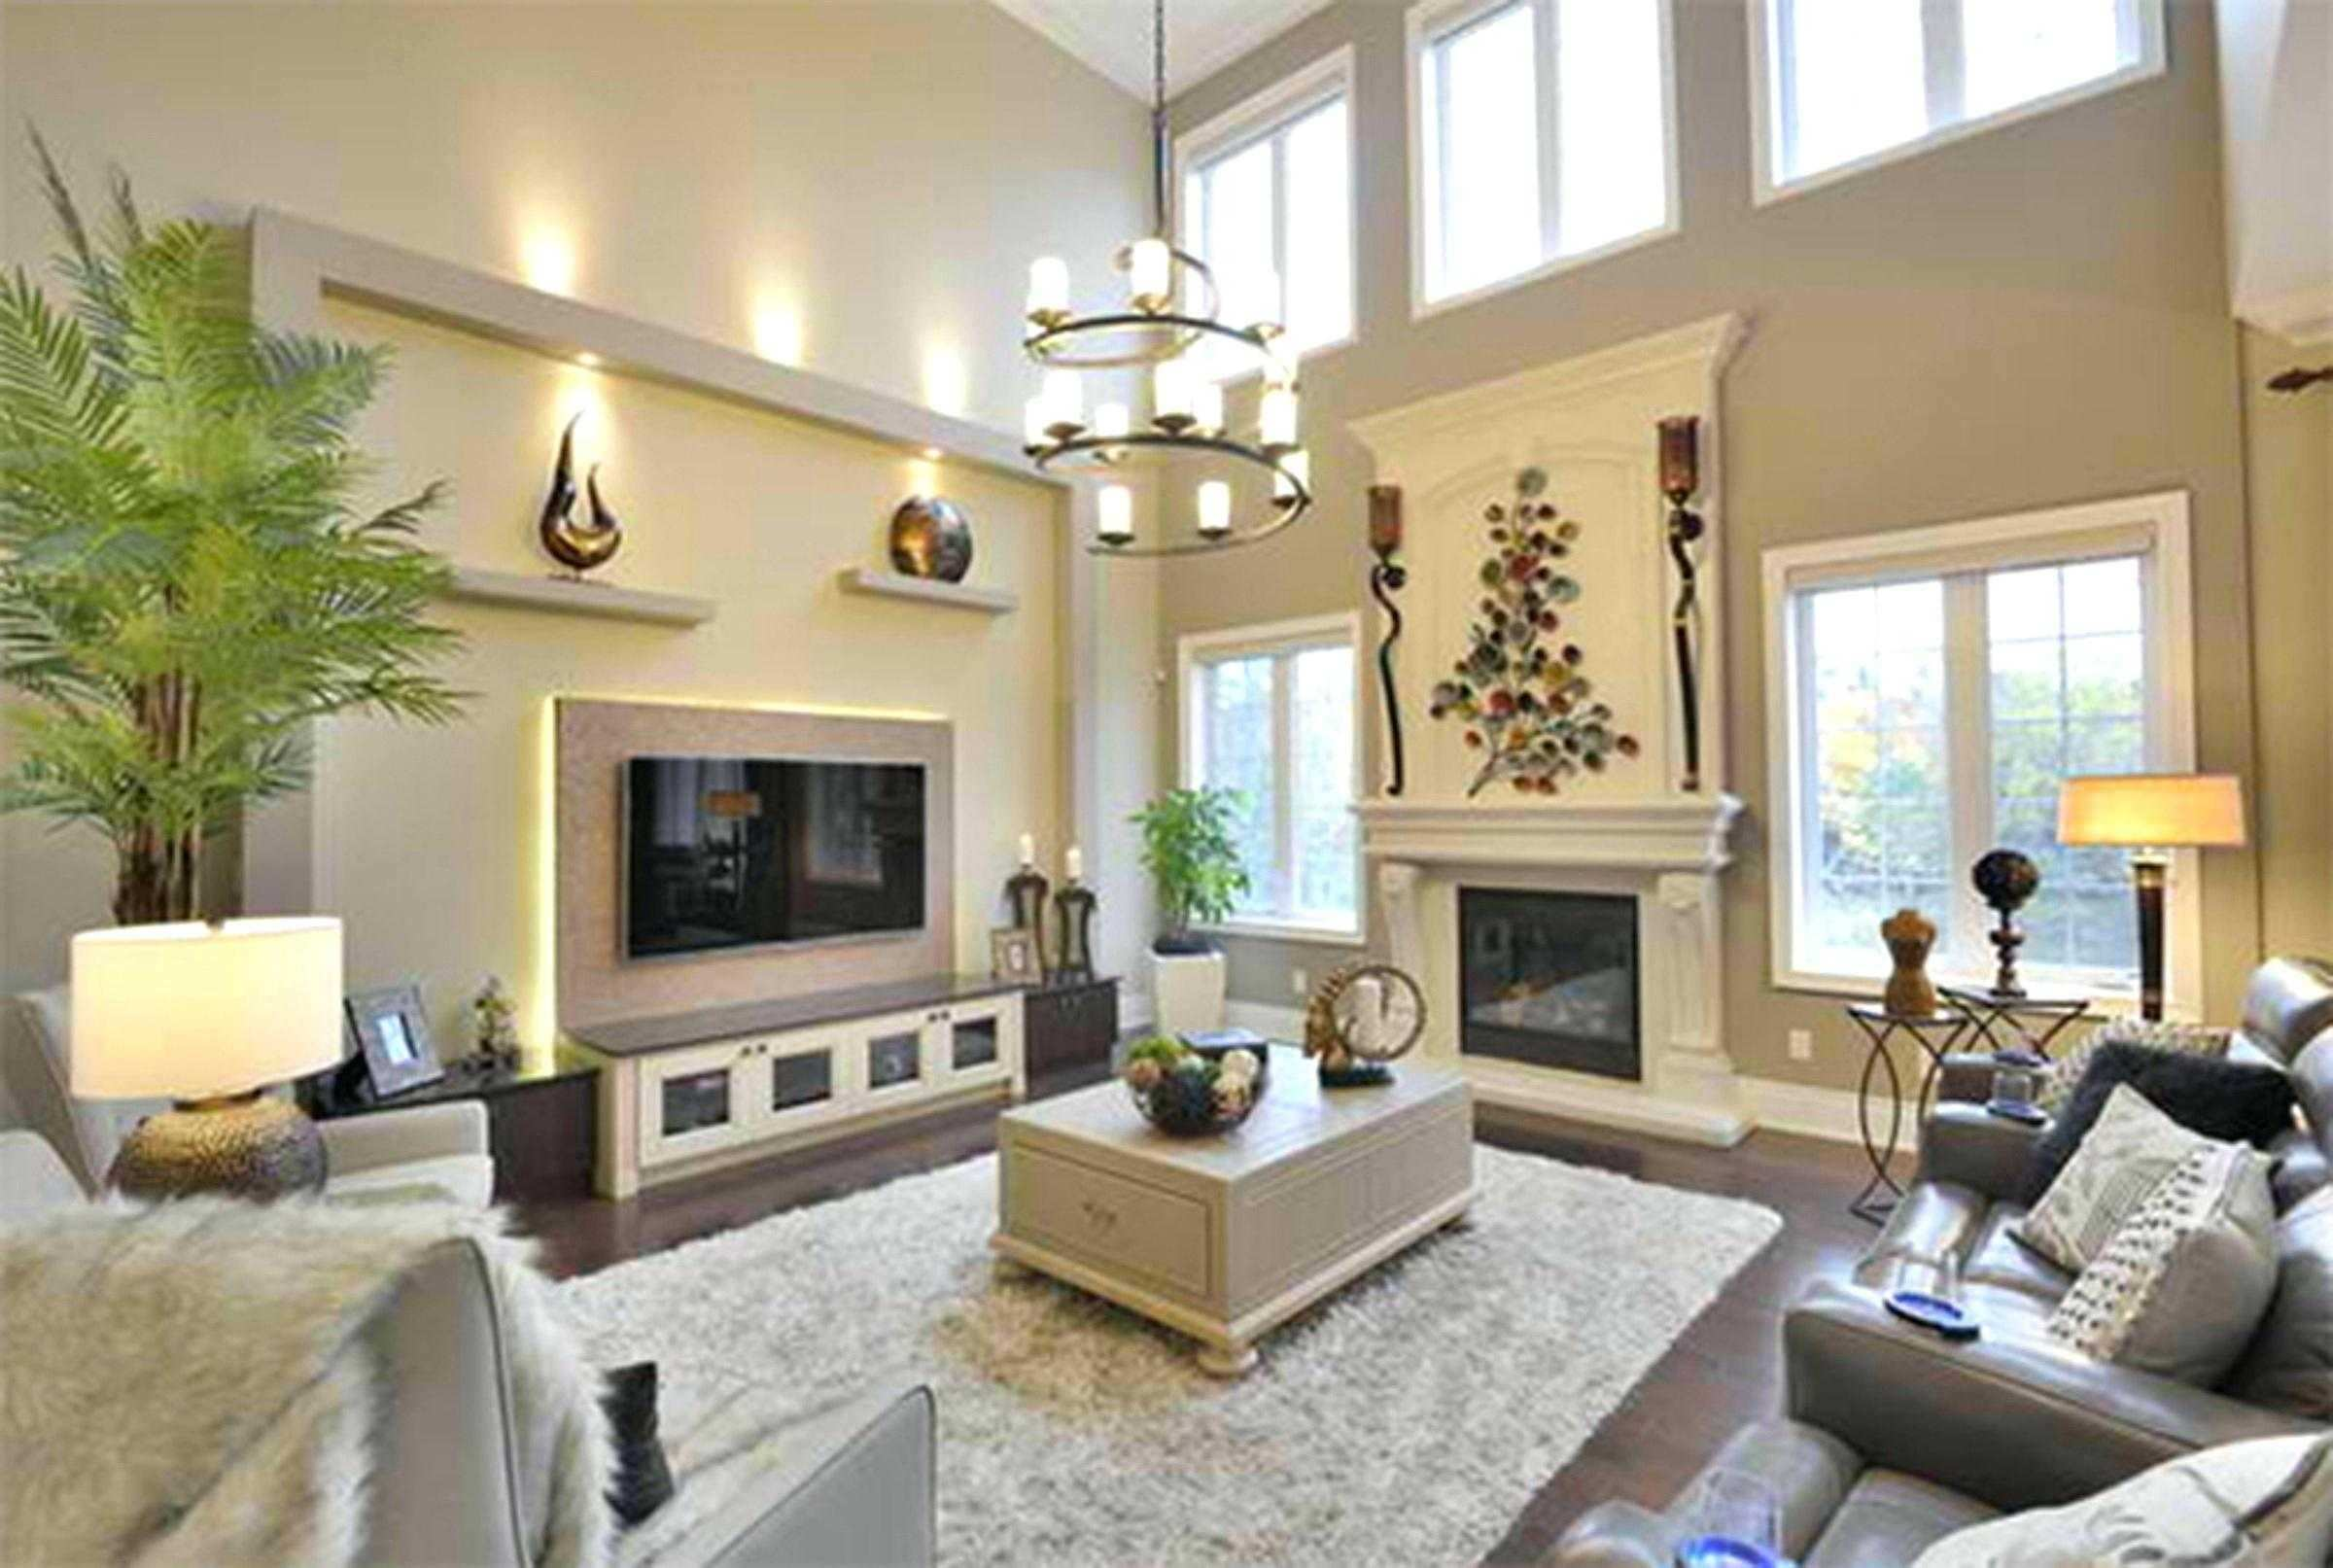 To Decorate A Wall In Living Room Awesome 1920s Home Decor